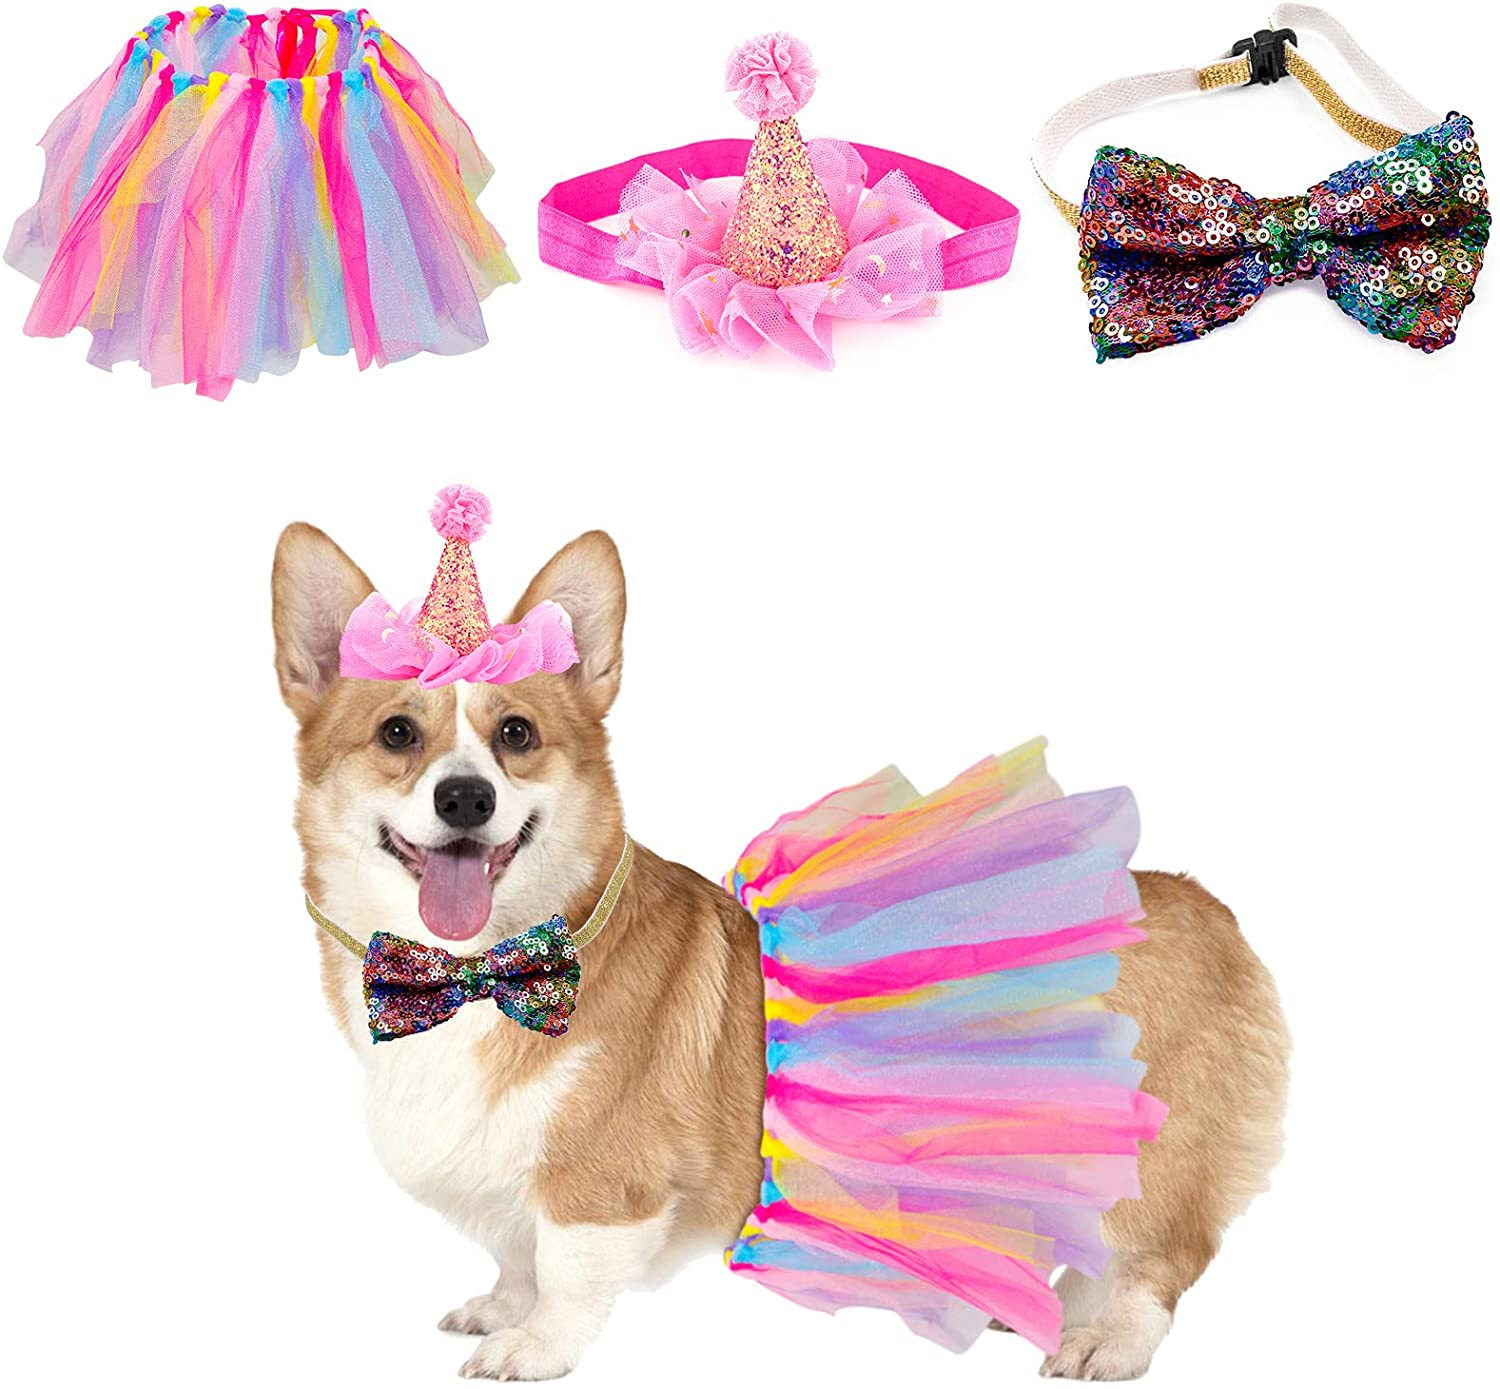 Dog Tutu Skirt Bowtie Hat Set, Outfit Birthday Wedding Party Supplies for Small Medium Puppy Girl